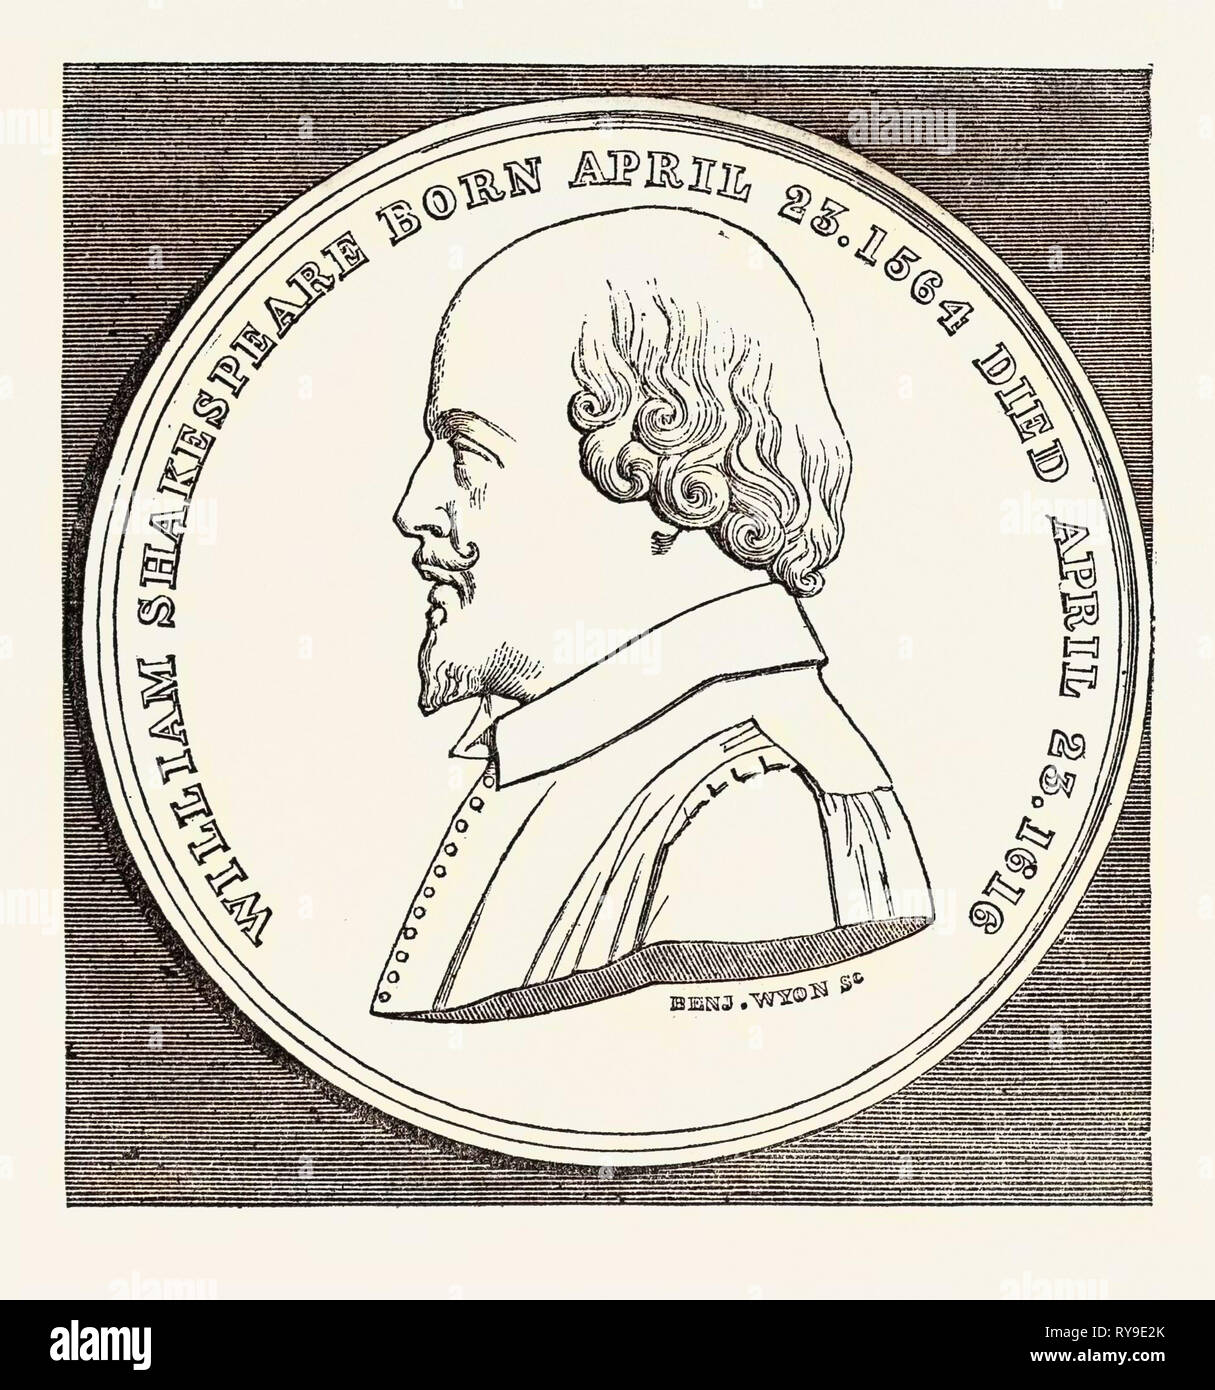 The Beaufoy Medal, in Commemoration of the Birth and Death of Shakespeare, April 23, 1564-1616 - Stock Image